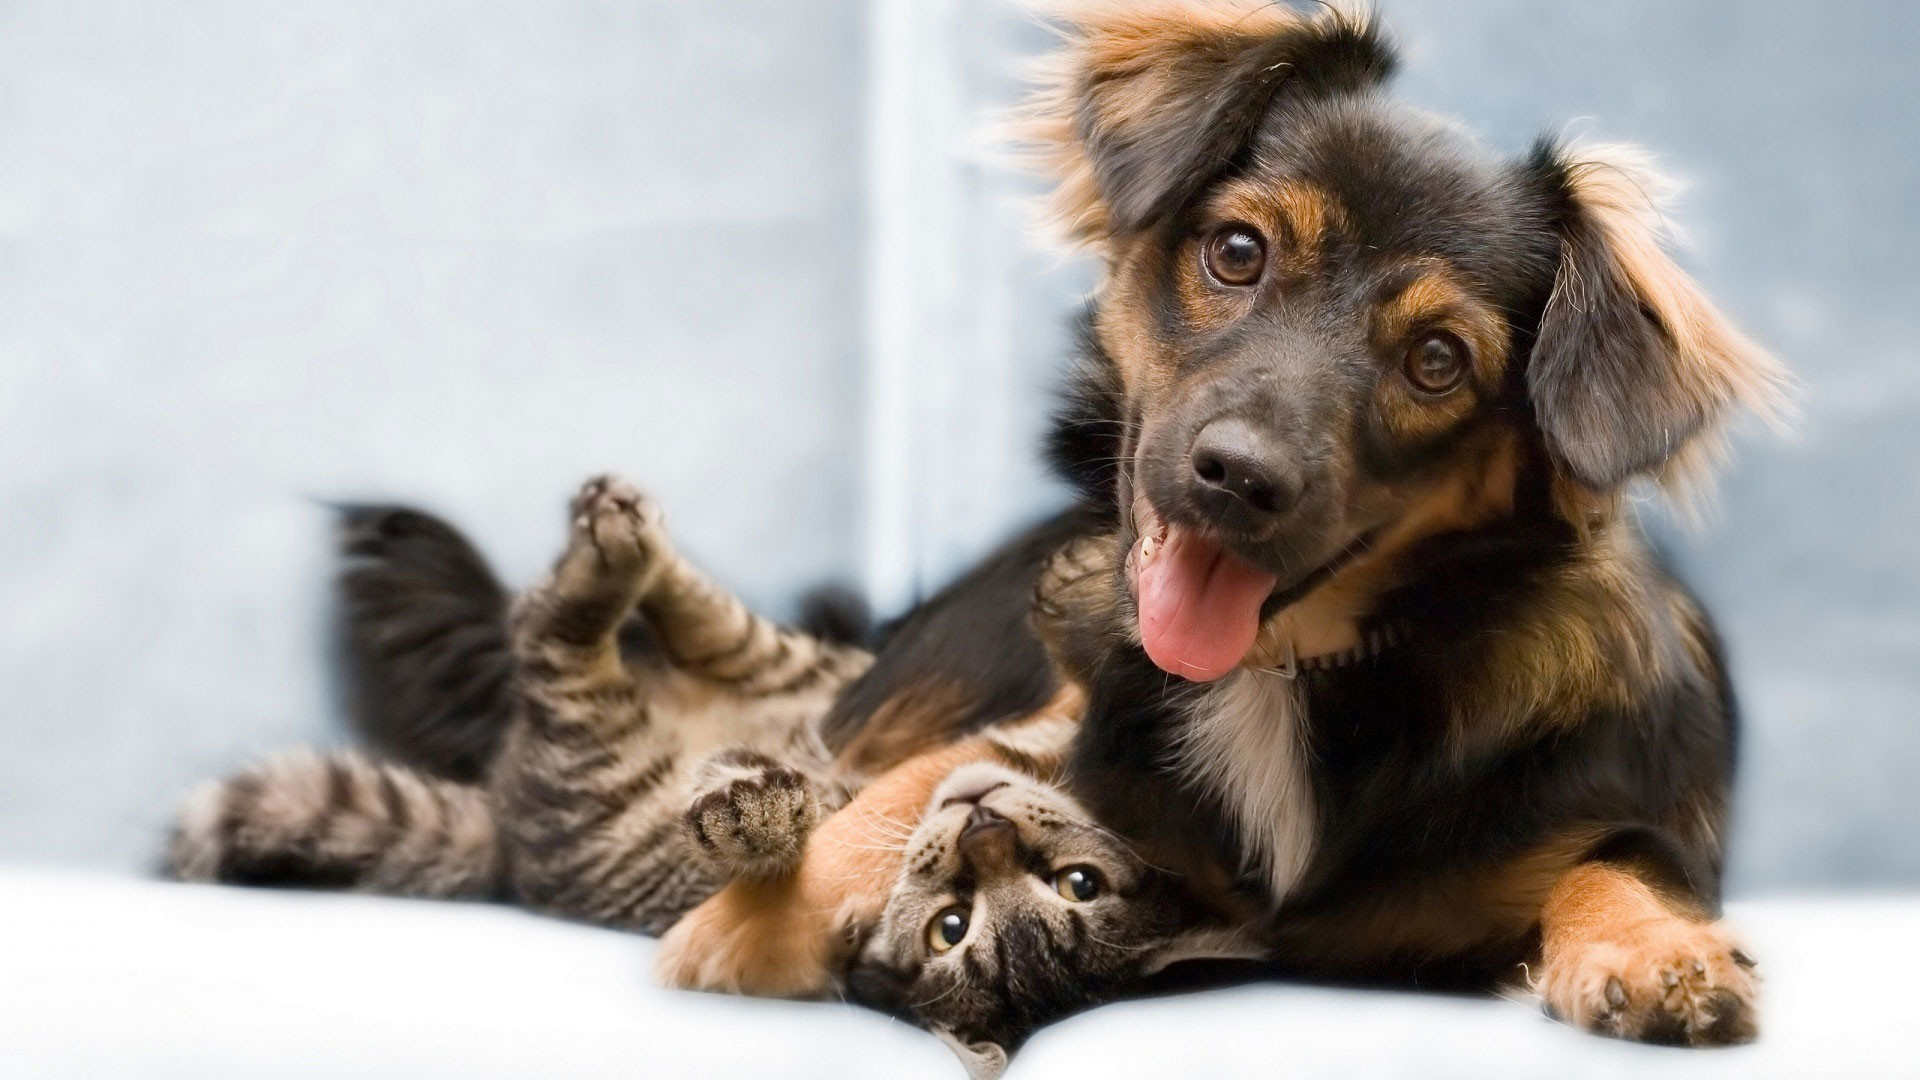 hd pics photos best dog and cat friends awesome hd quality desktop  background wallpaper